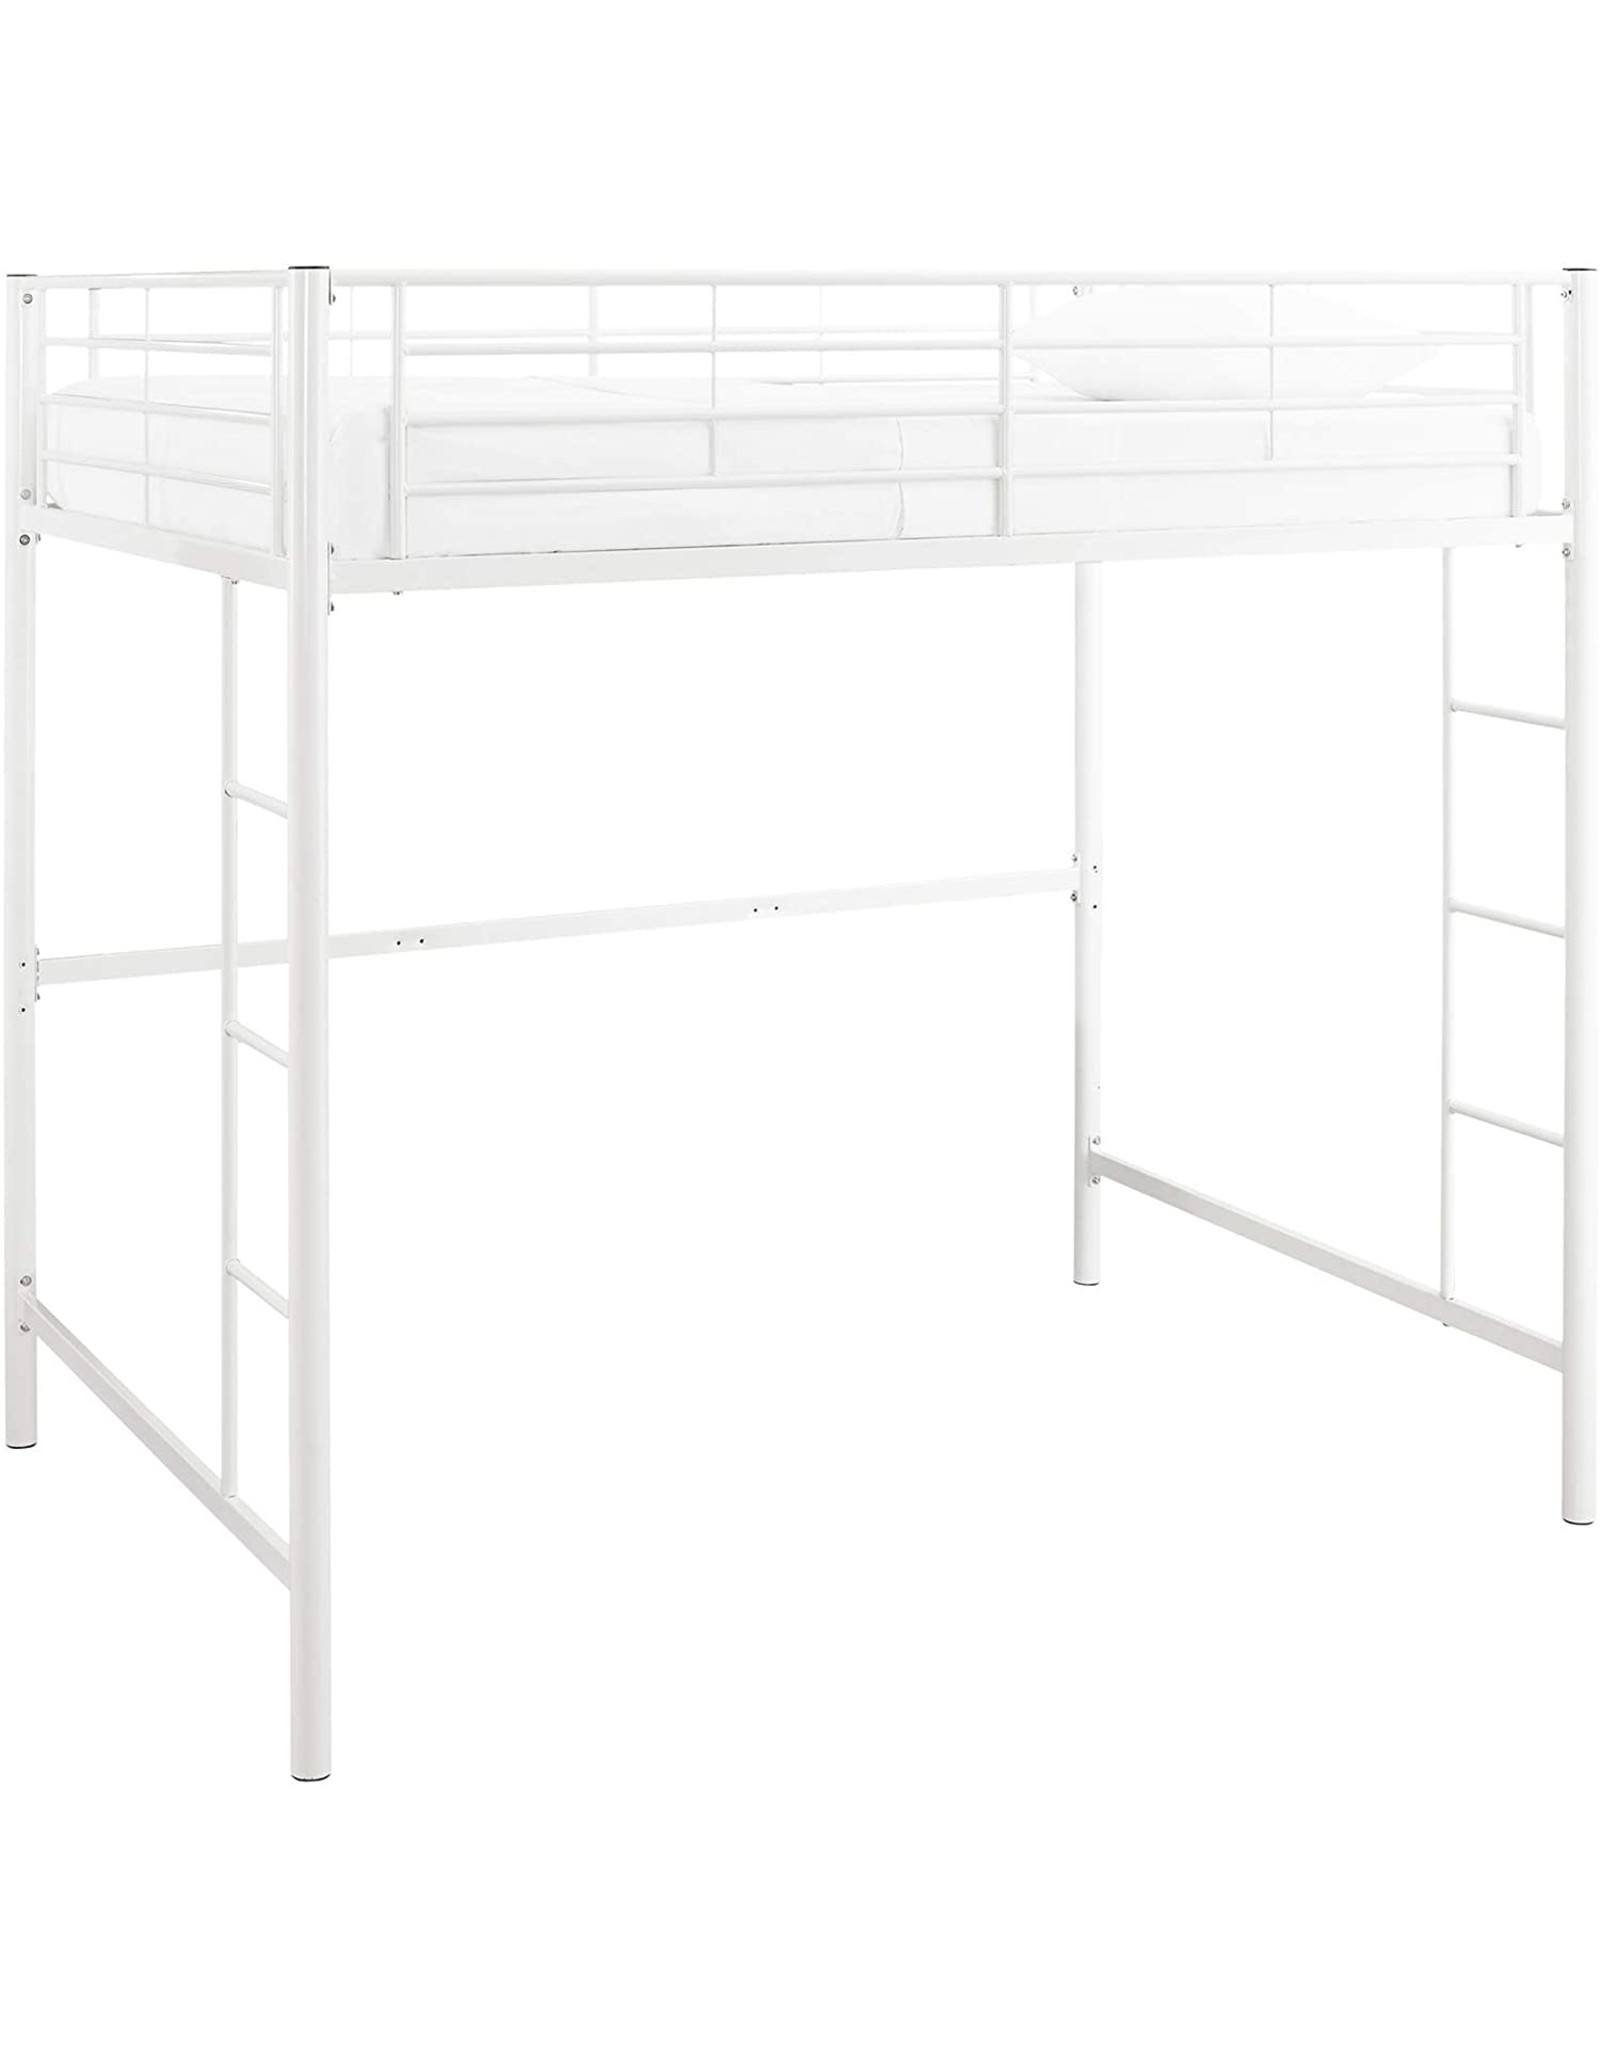 Walker Edison Furniture Company Walker Edison Furniture Modern Metal Pipe Full Double Size Loft Kids Bunk Bed Bedroom Storage Guard Rail Ladder White Abusa Buffalo